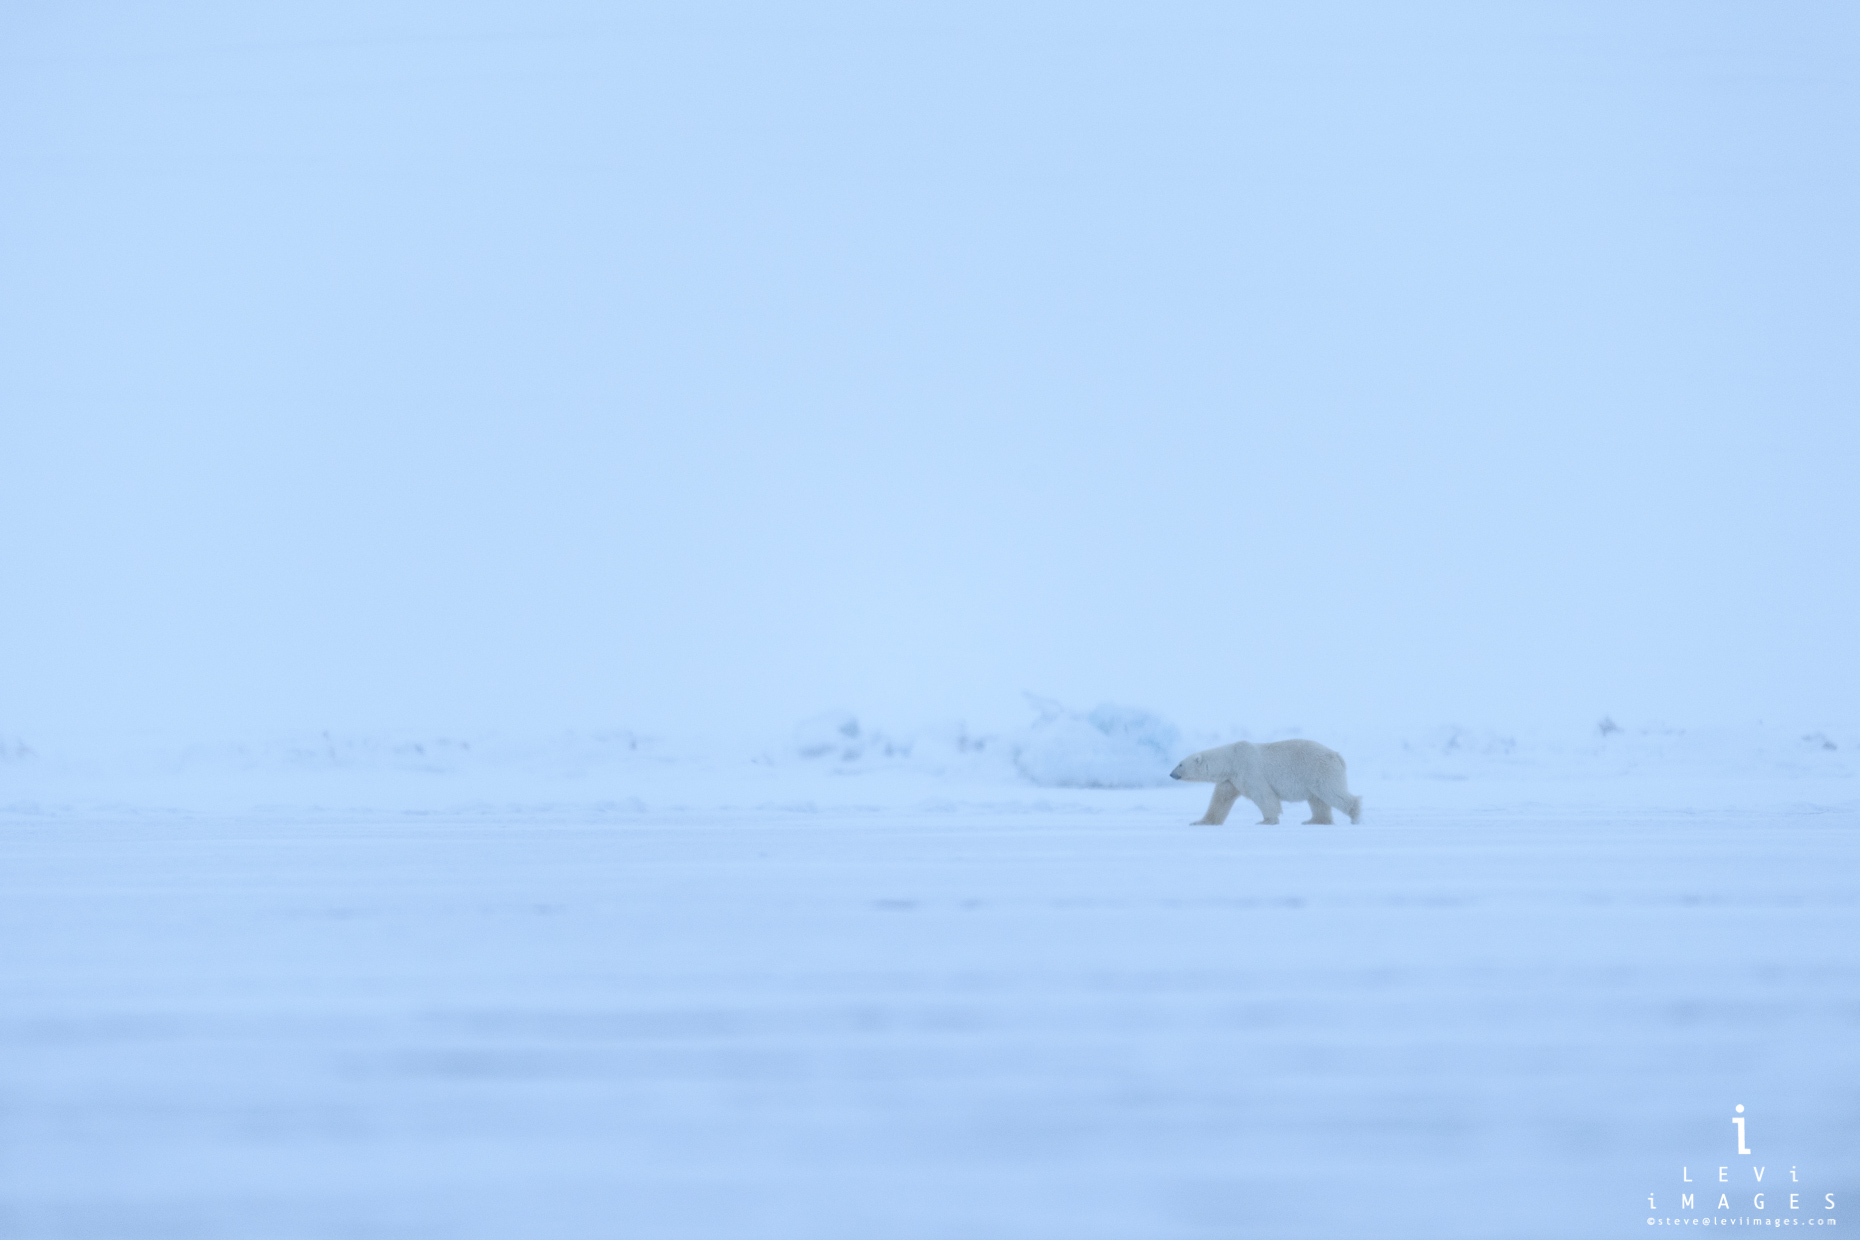 Polar bear crossing wind-swept ice. Svalbard, Norway